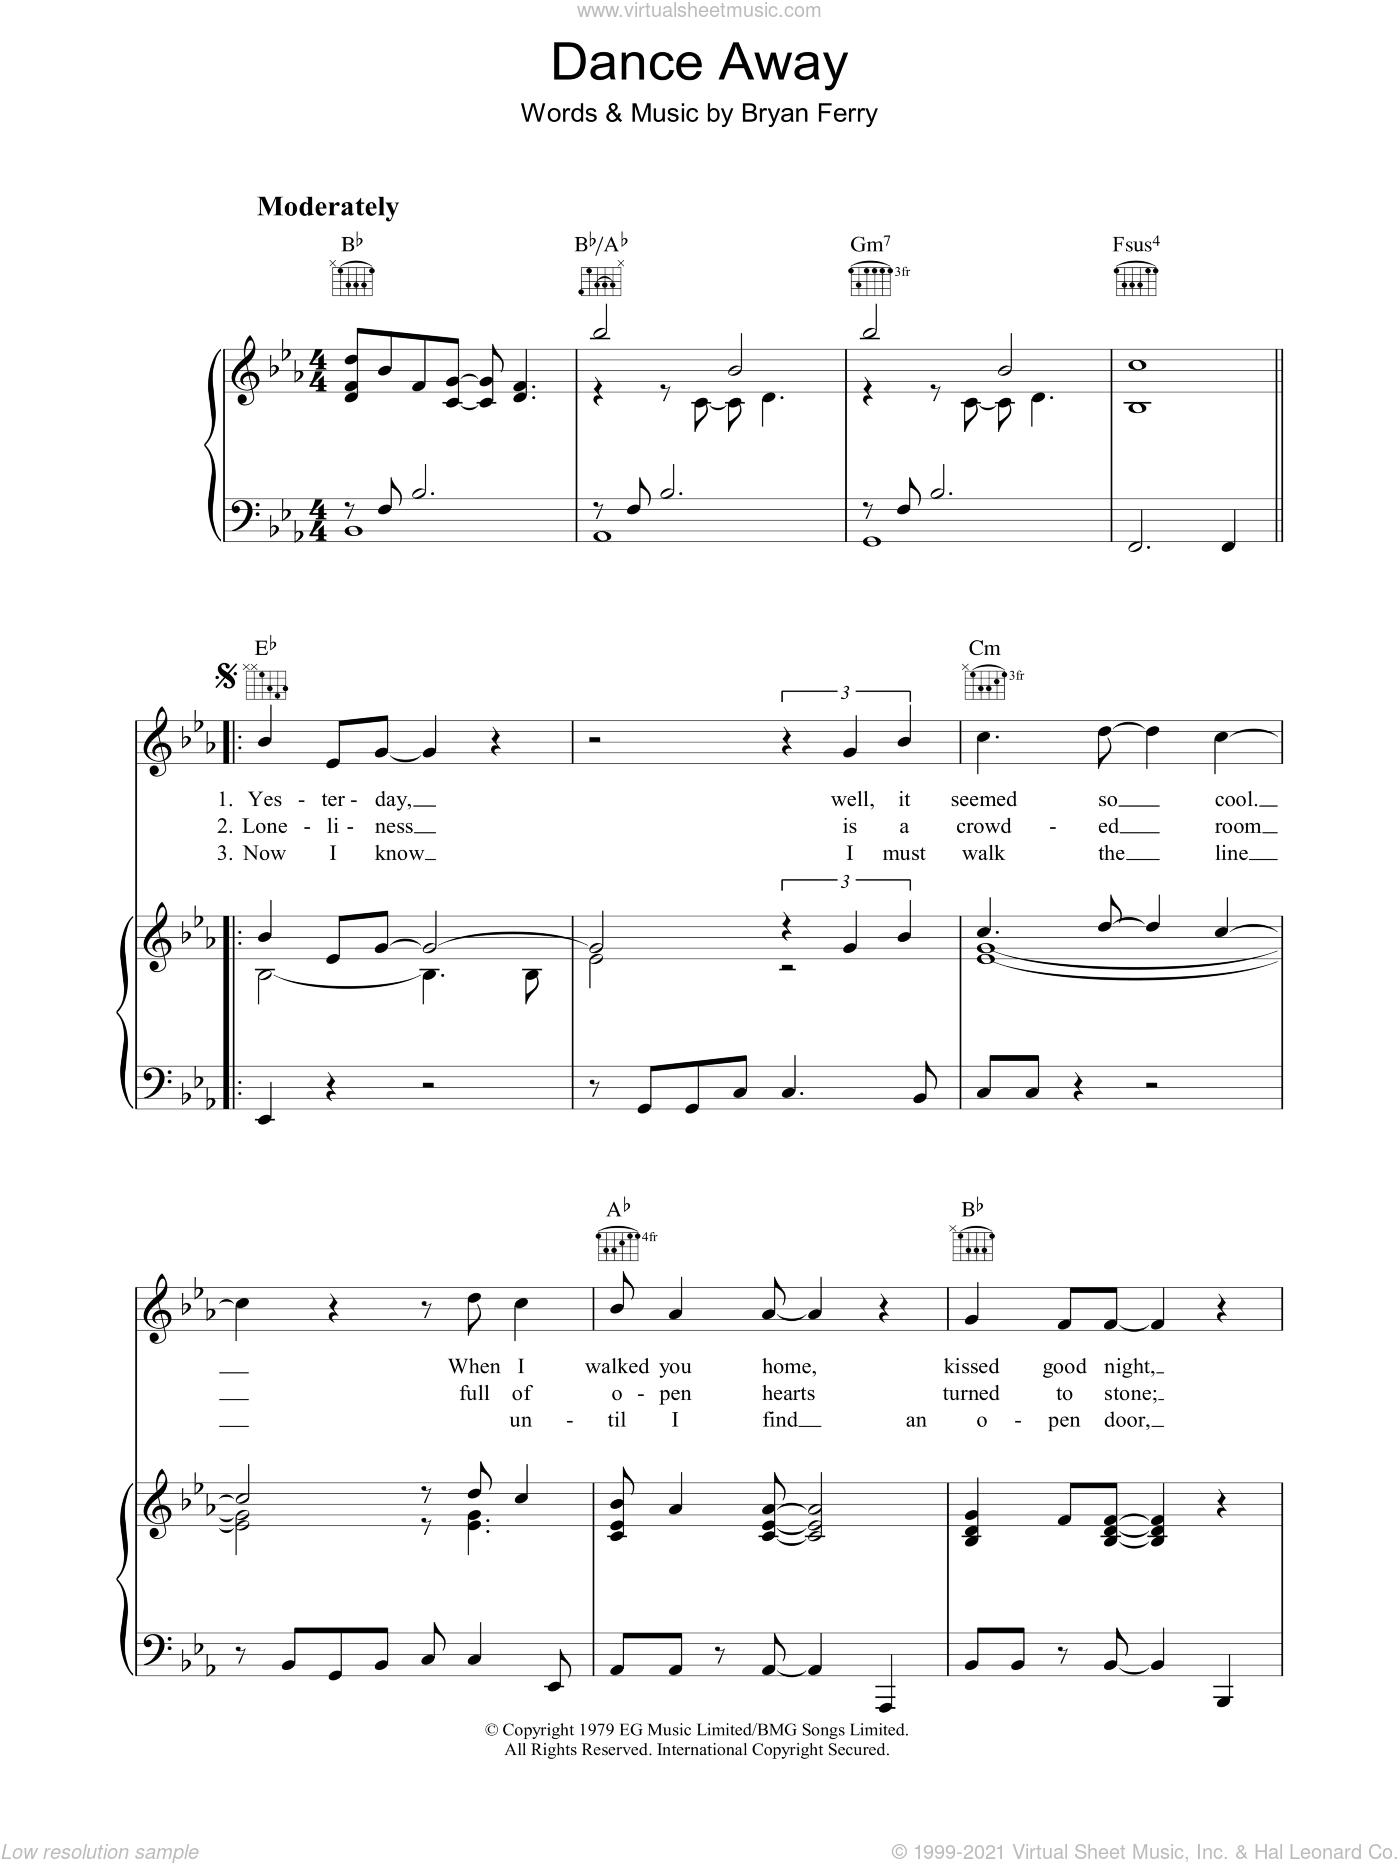 Dance Away sheet music for voice, piano or guitar by Bryan Ferry